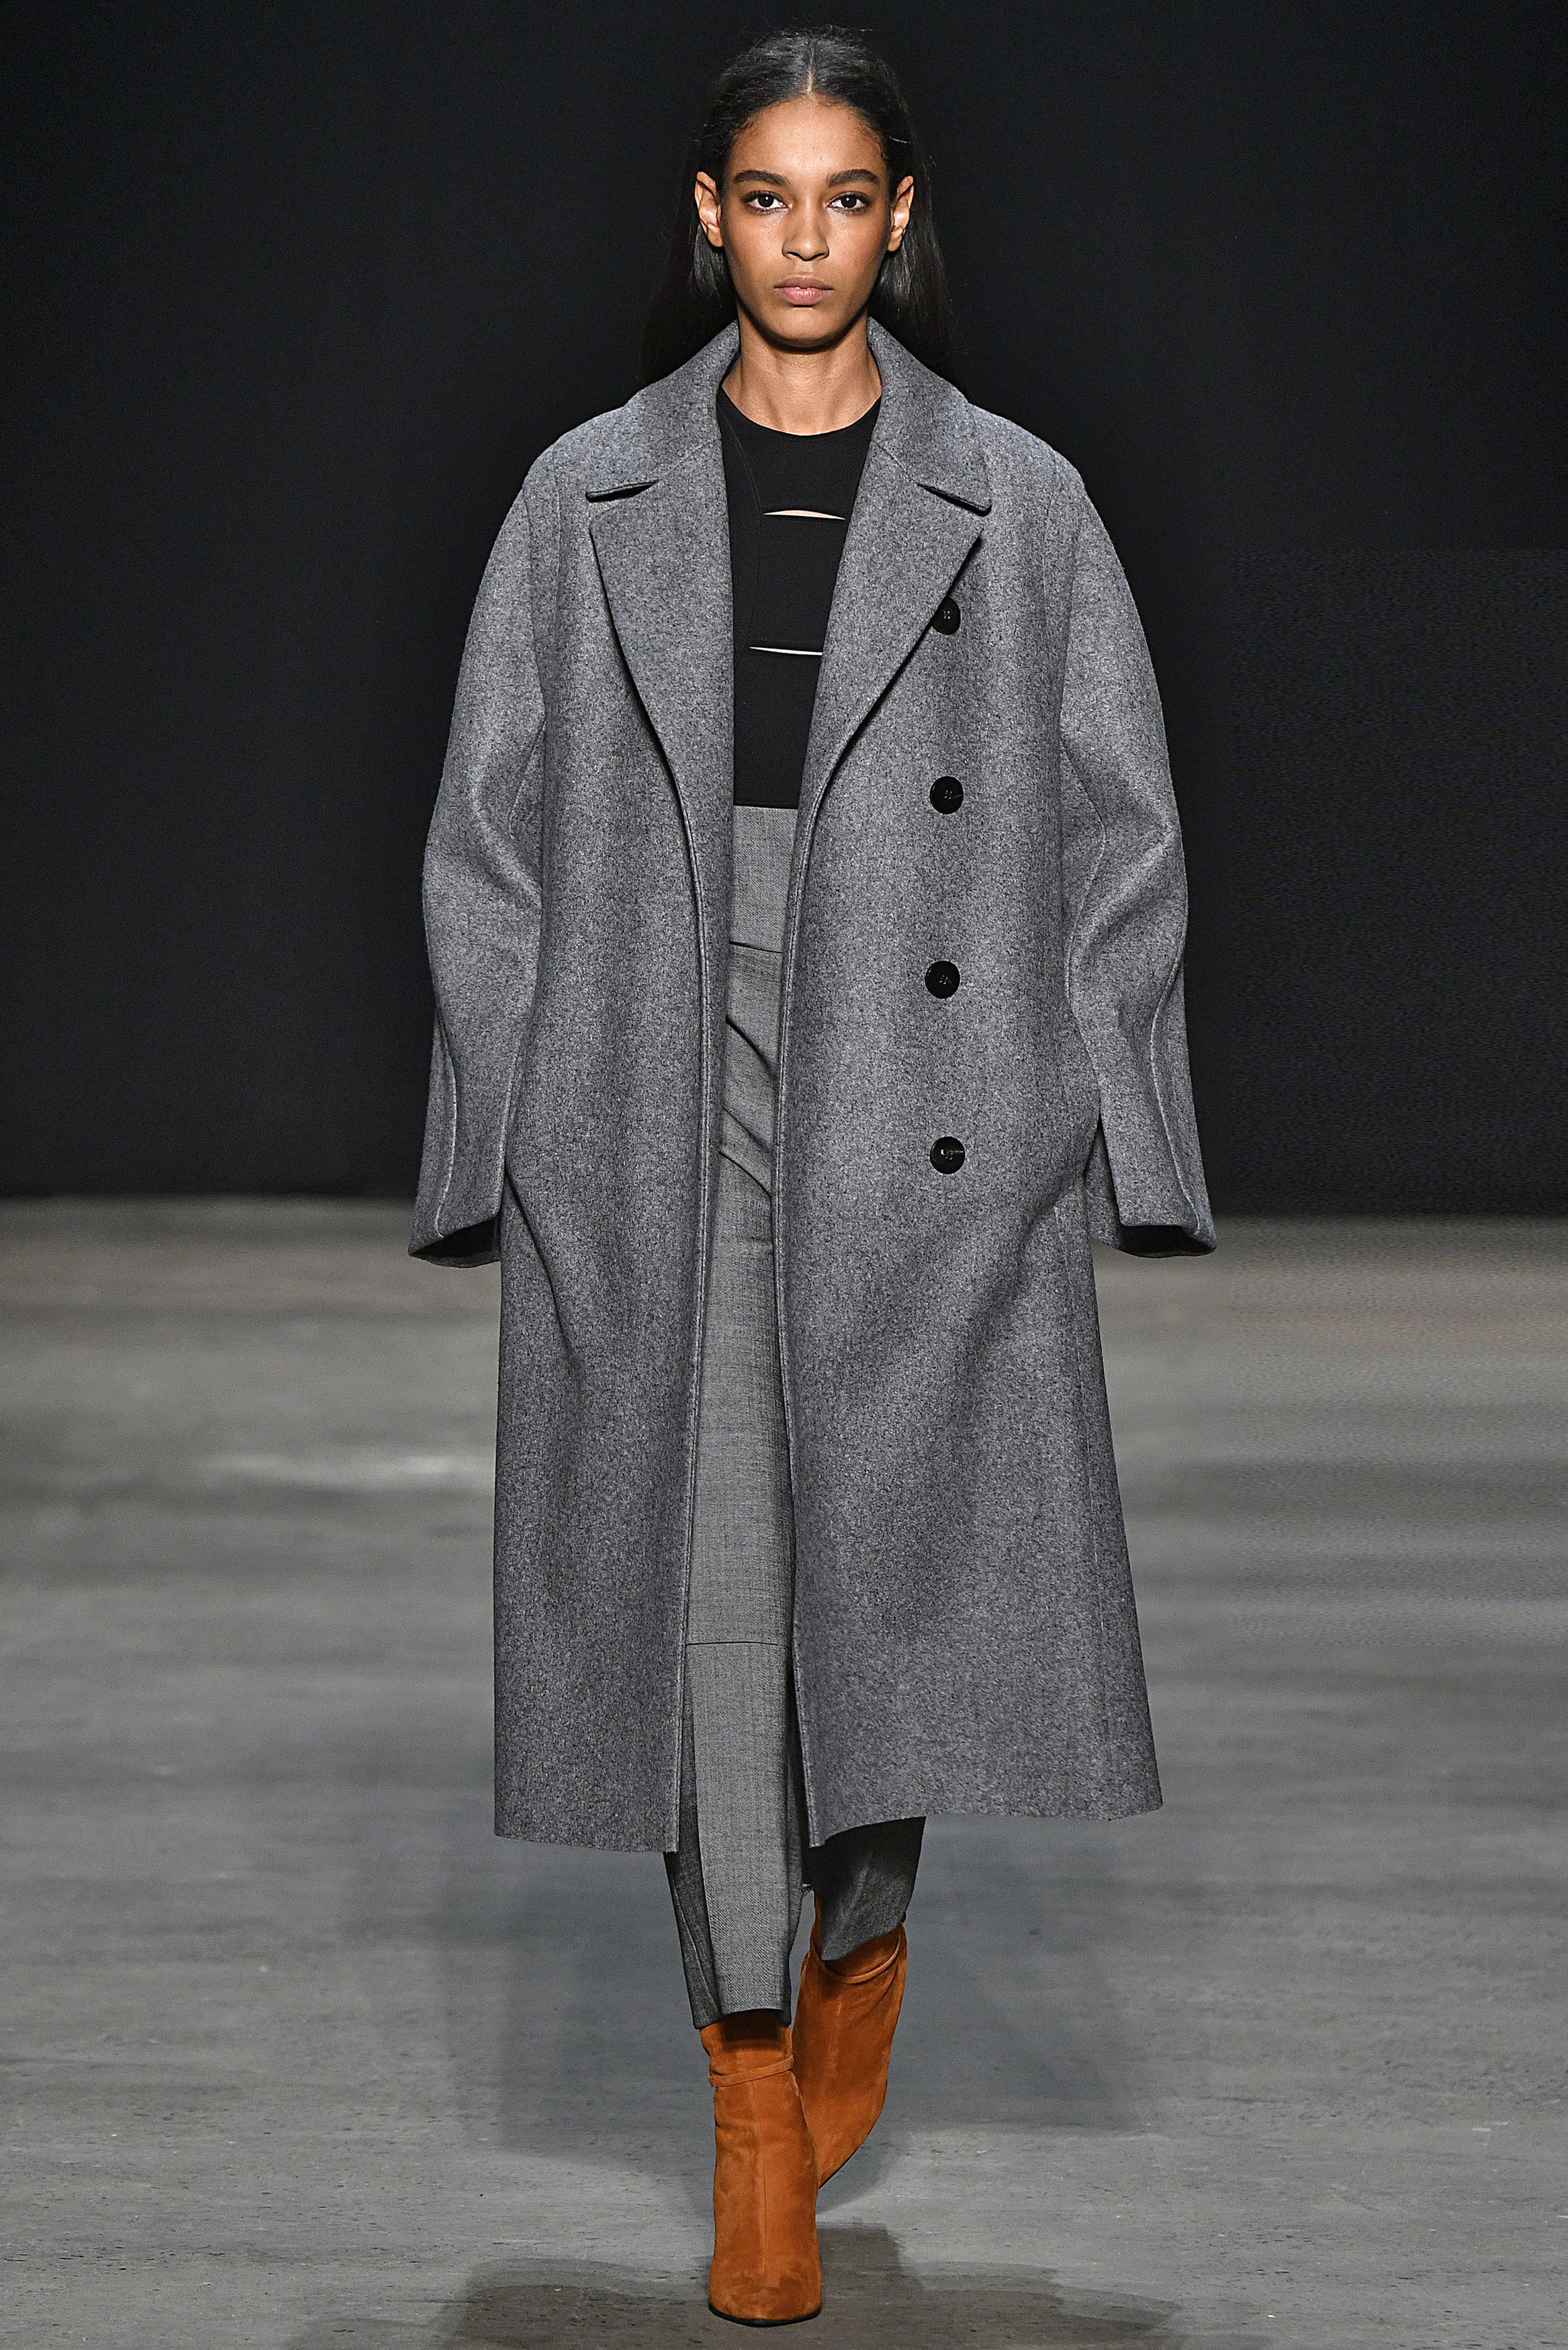 Narciso Rodriguez Fall 2017 collection. Grey melange pressed wool coat over black/charcoal leather and wool jumpsuit.